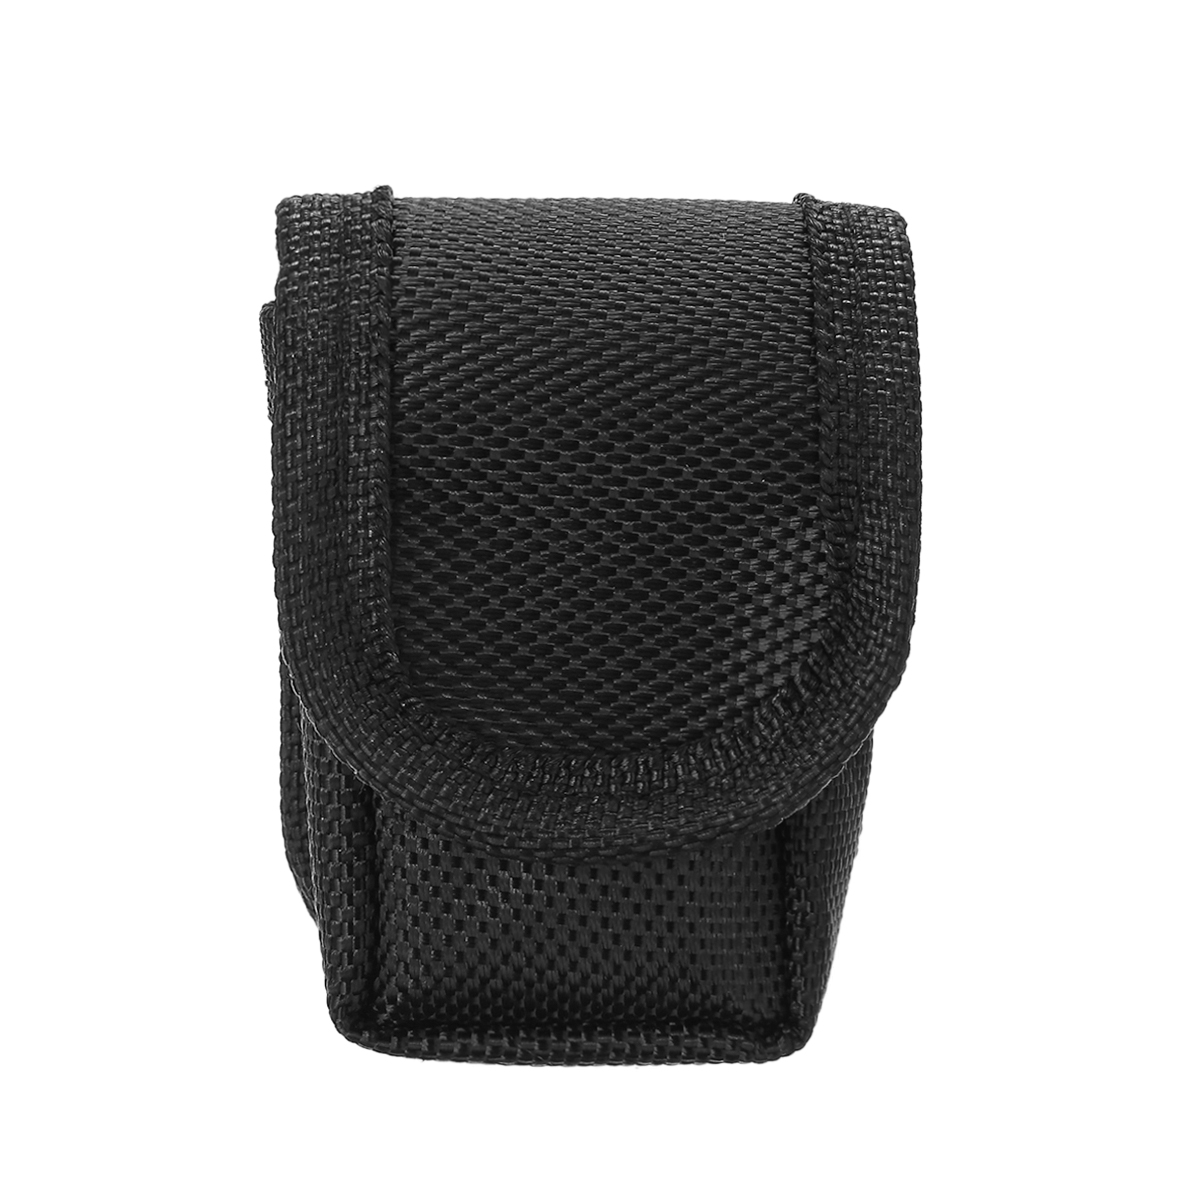 1pc Fabric Nylon Finger Pulse Oximeter Pouch Portable Case Storage Pack Protective Bag 70*50*30mm For Finger Pulse Oximeter